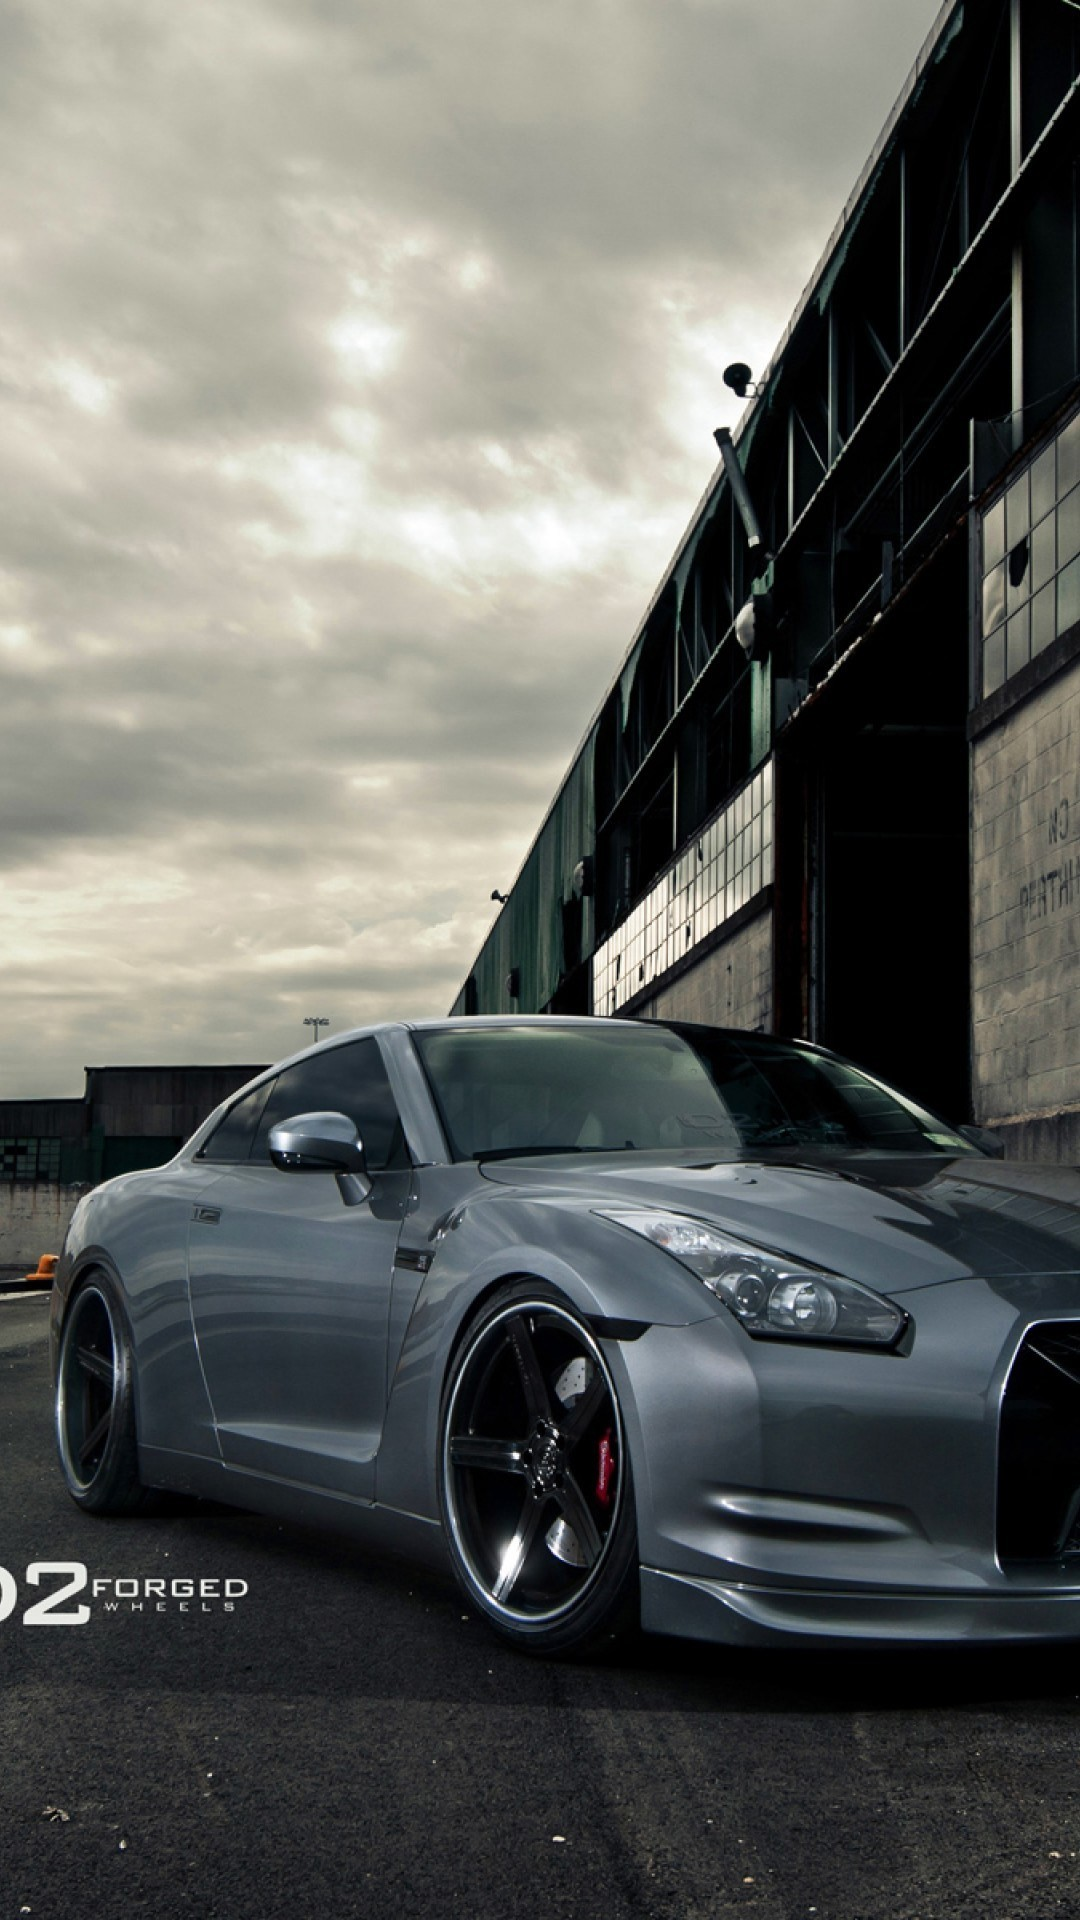 gtr iphone wallpaper (73+ images)